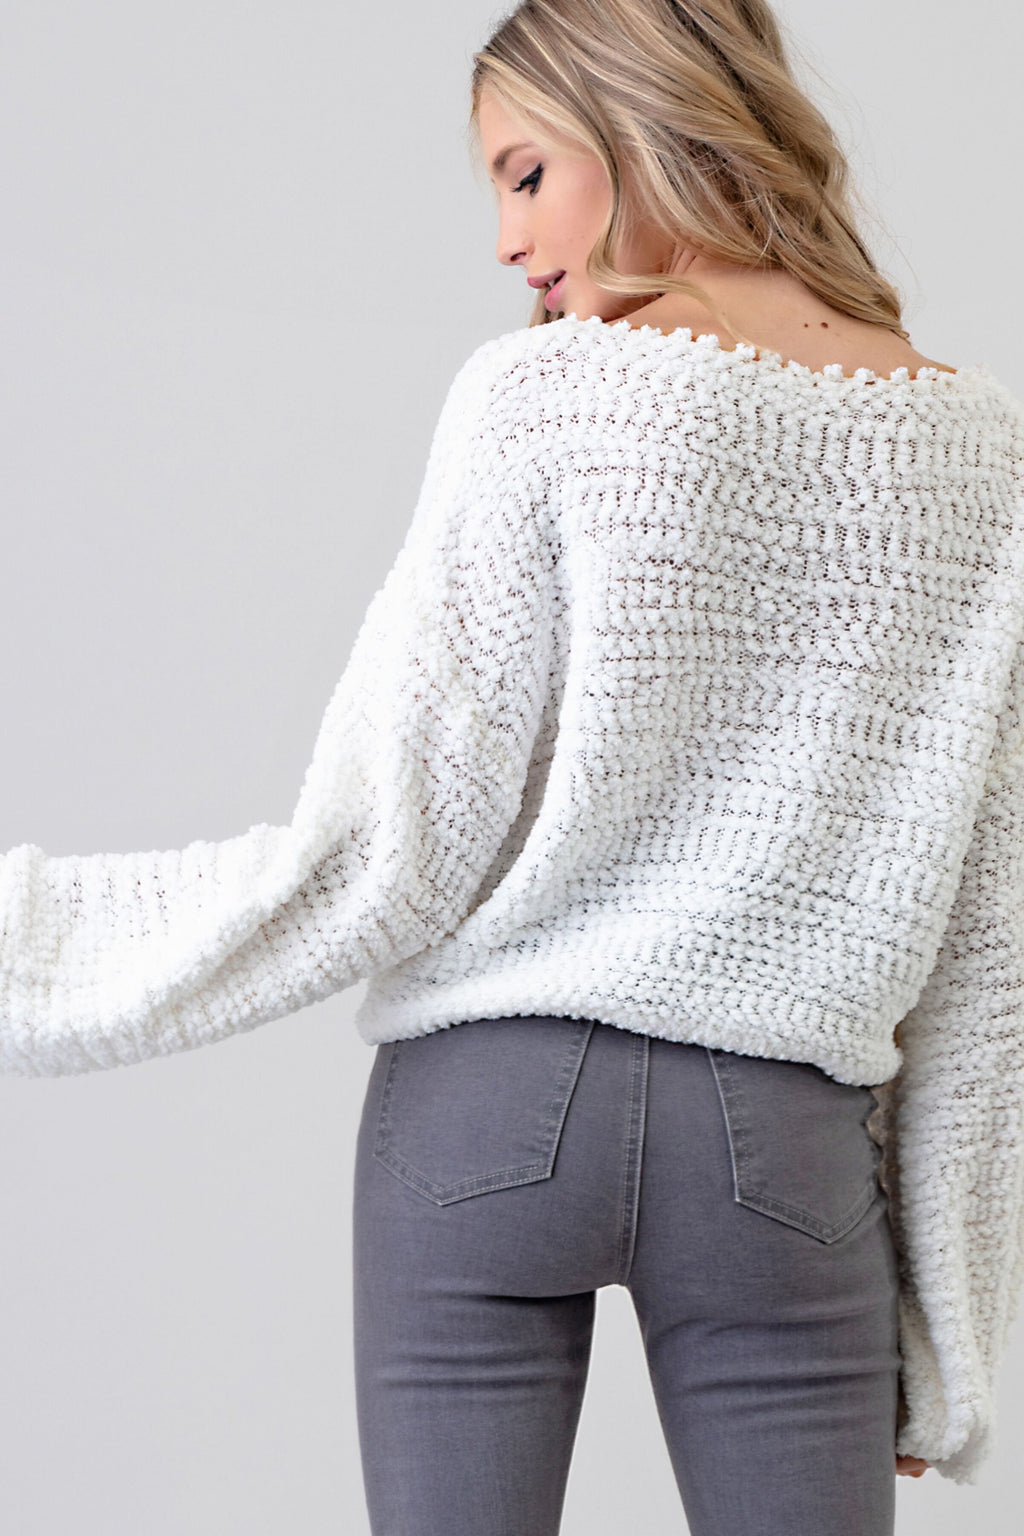 Popcorn Cream Knit Sweater With Drawsting Bottom